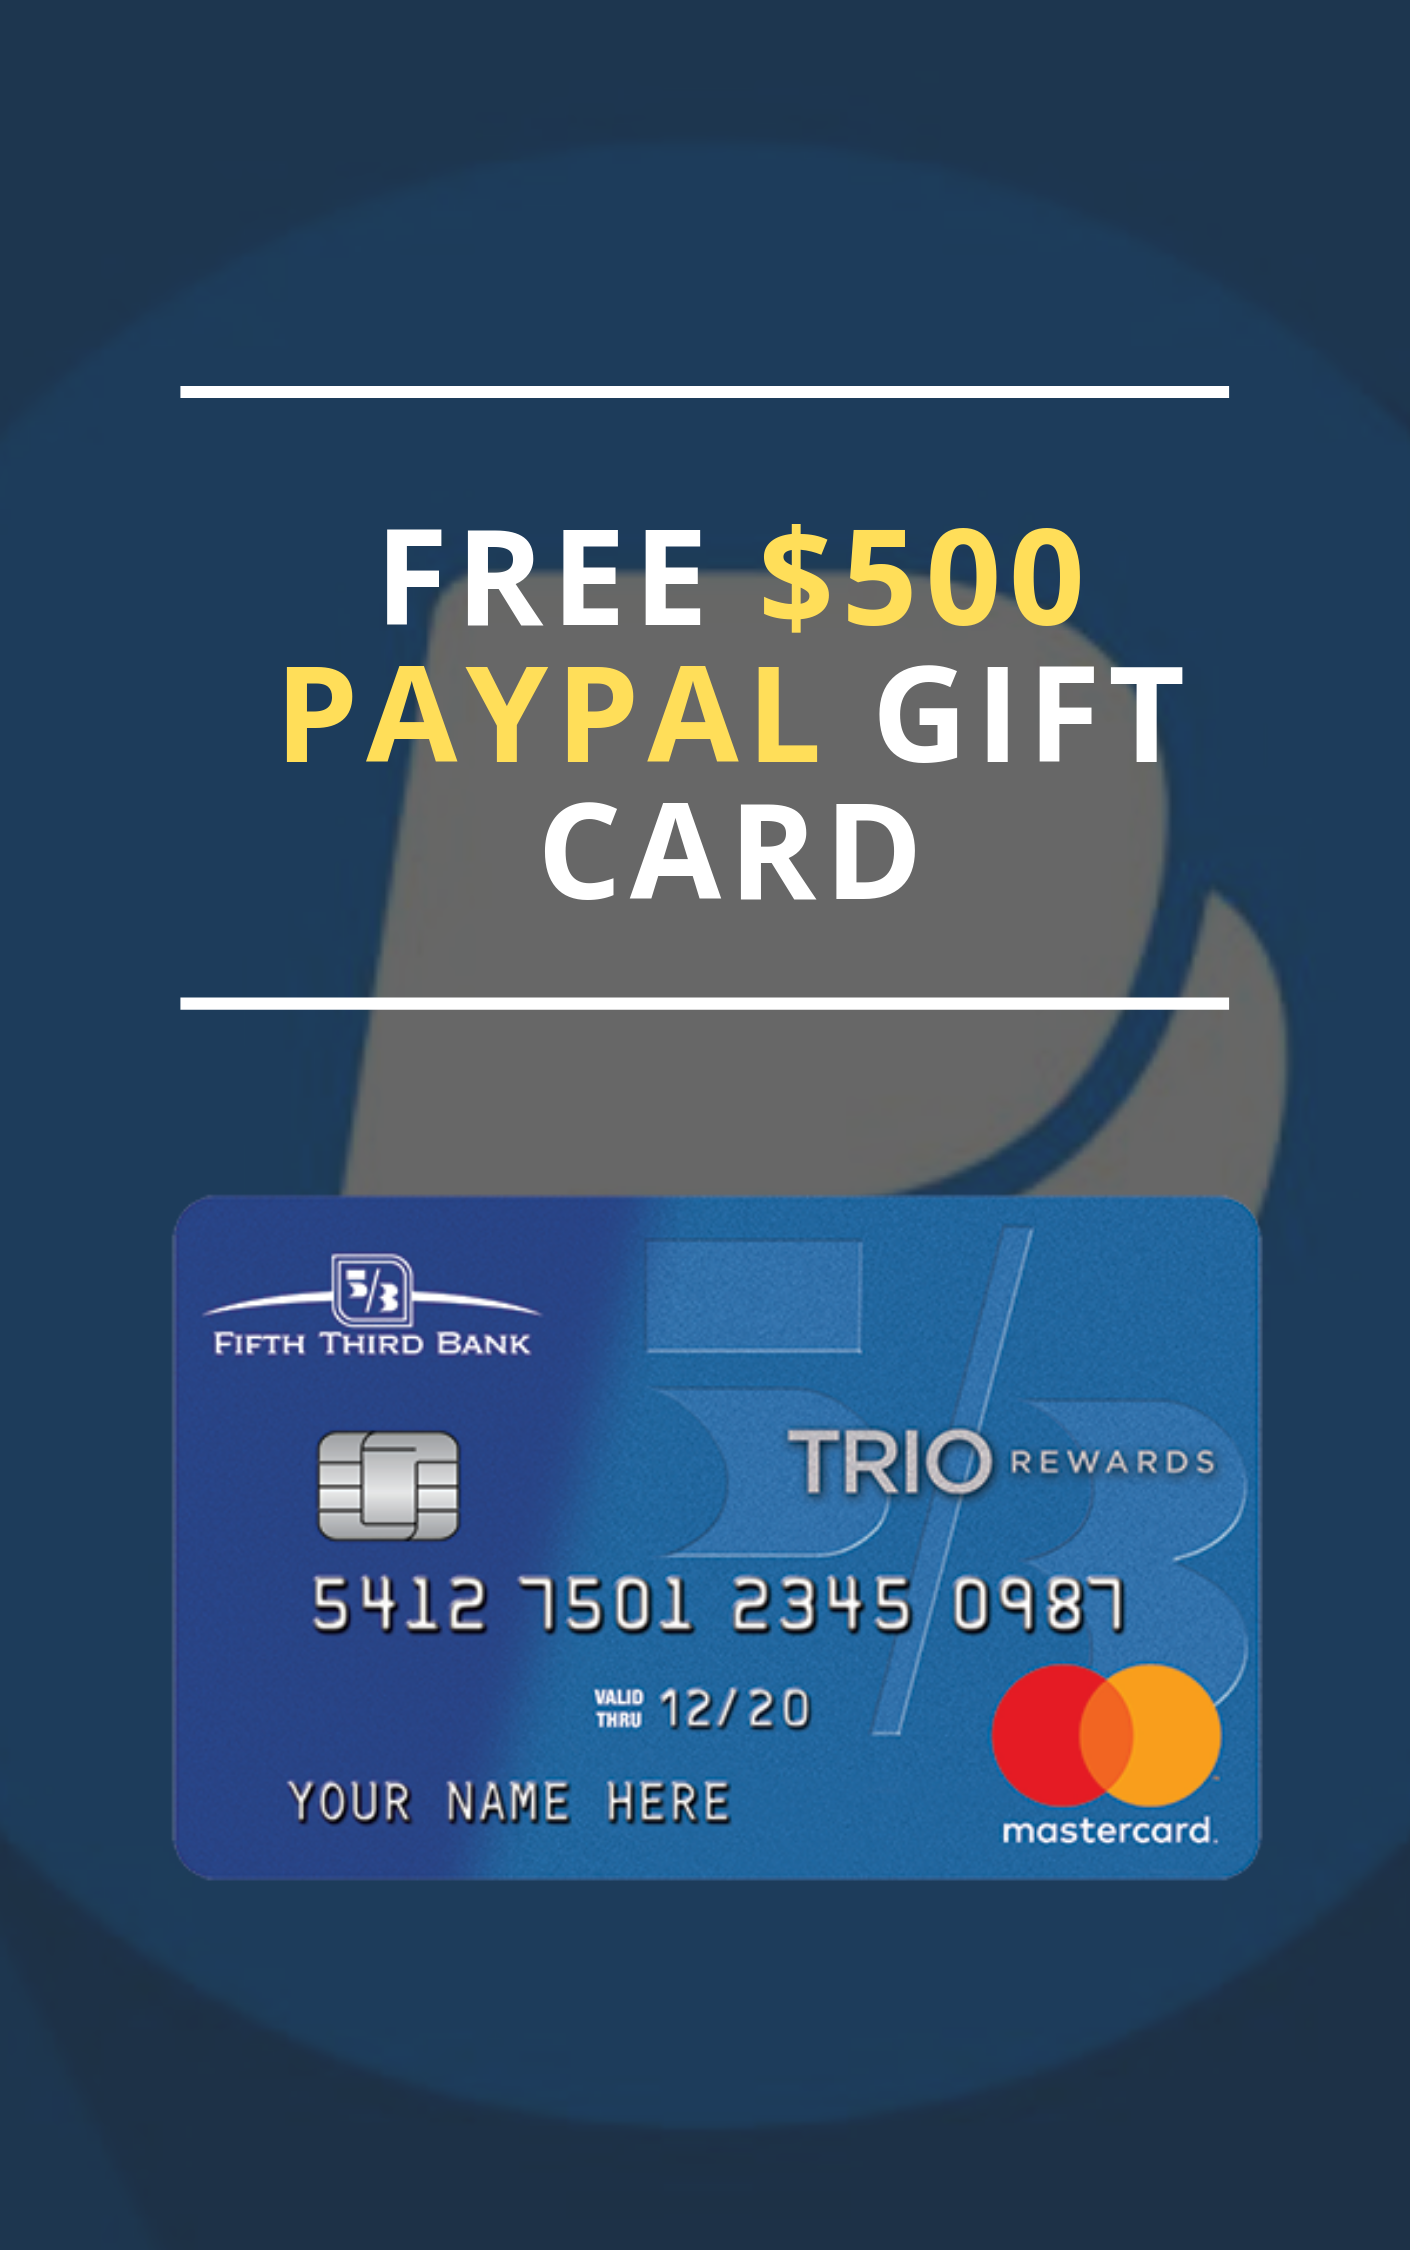 How To Put Money On A Mastercard Gift Card